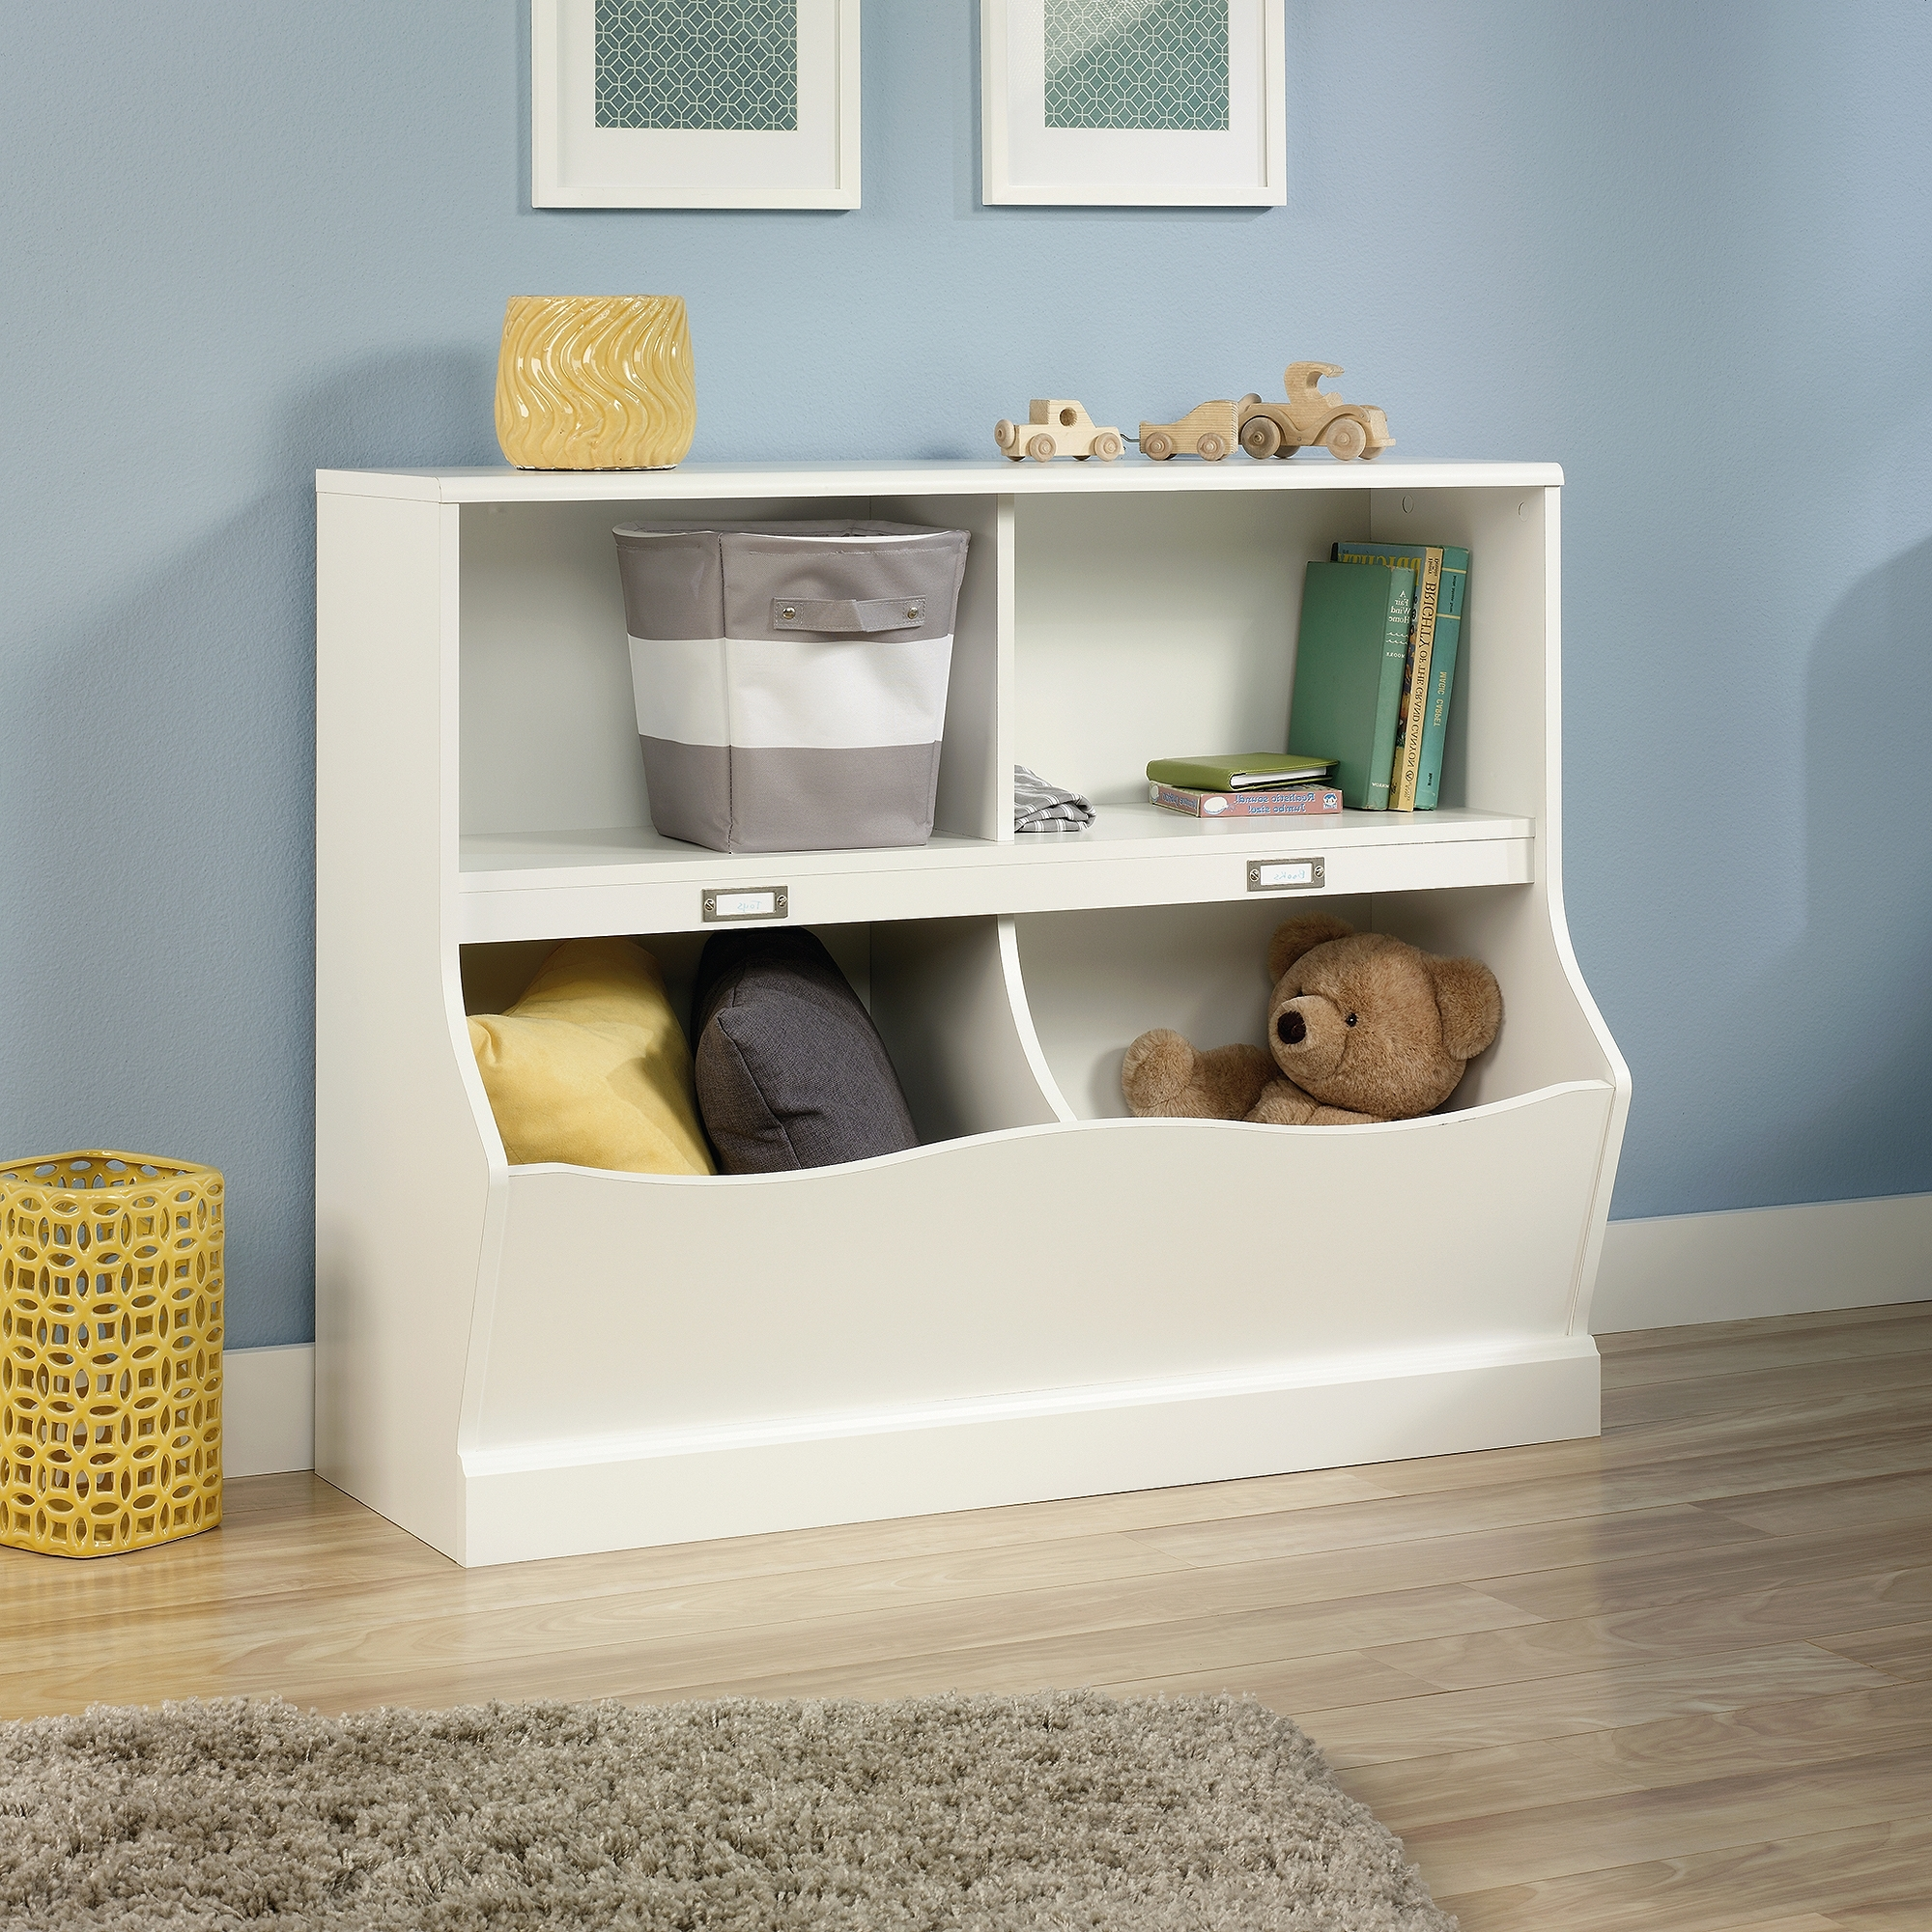 Widely Used White Walmart Bookcases In Sauder Storybook Storage Bin Bookcase, Soft White Finish – Walmart (View 15 of 15)